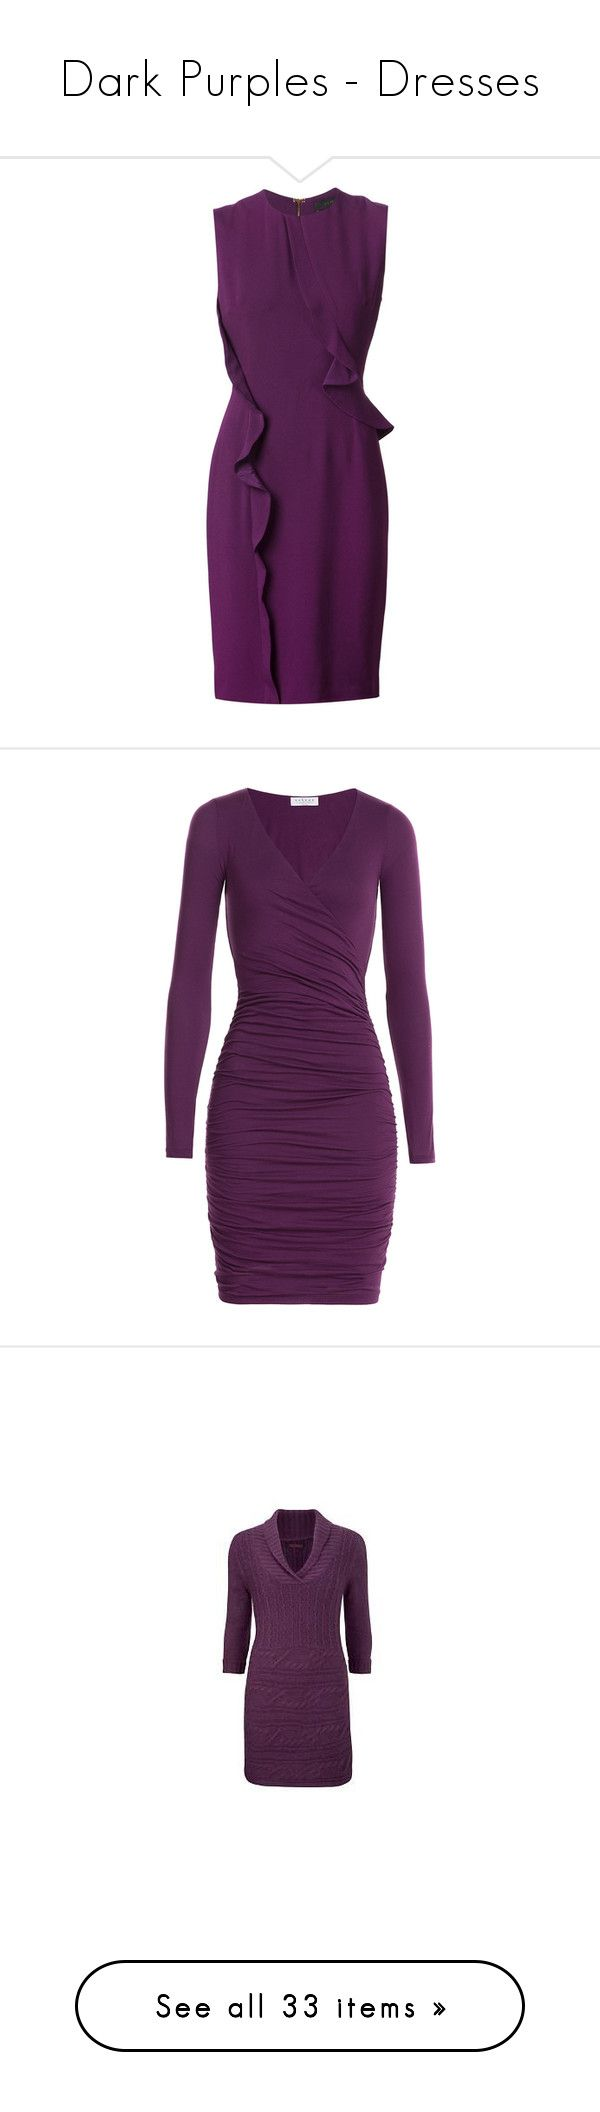 """Dark Purples - Dresses"" by mscody ❤ liked on Polyvore featuring dresses, short dress, robe, ruffle dress, short dresses, ruffle cocktail dress, fitted dress, short frilly dresses, purple and v neck dress"